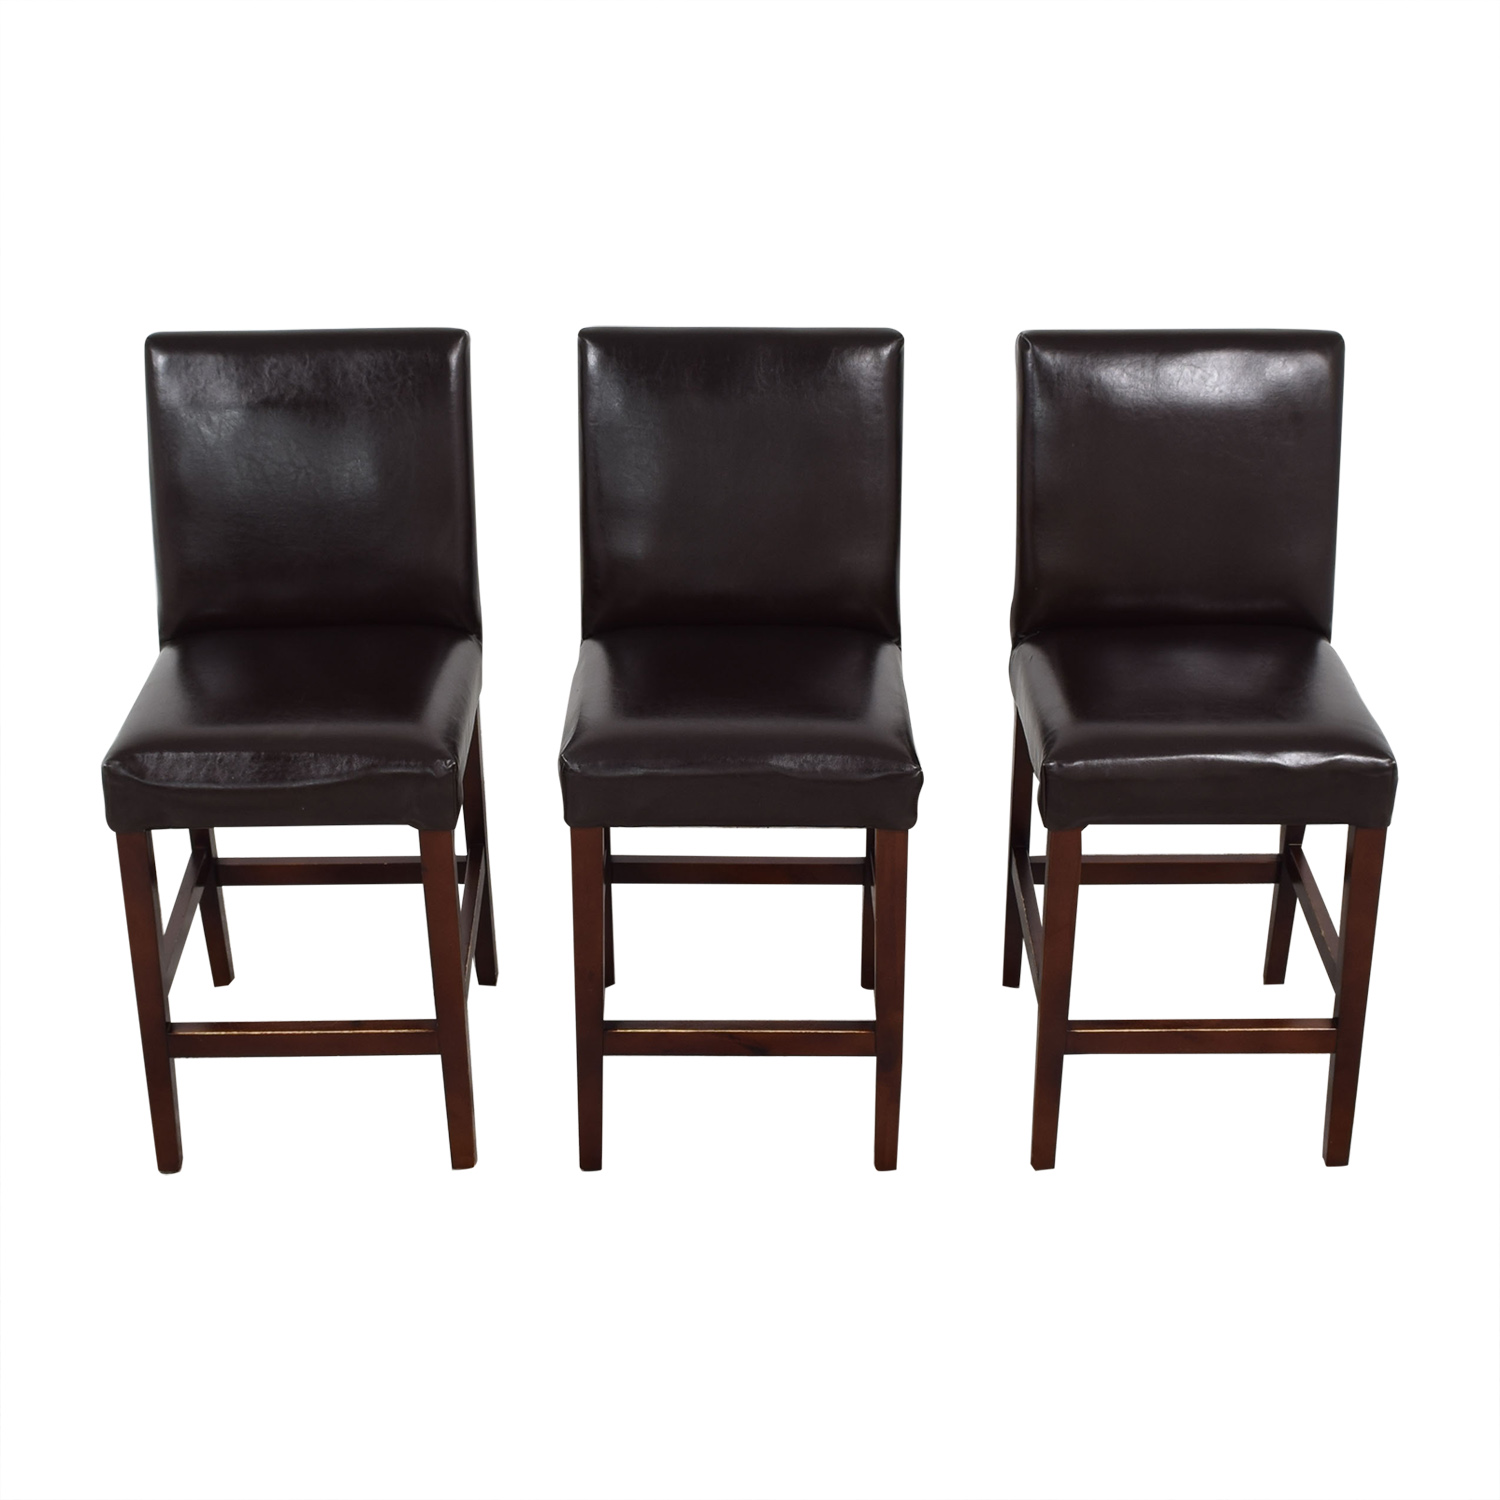 Four Hands Four Hands Ashford James Counter Stools for sale